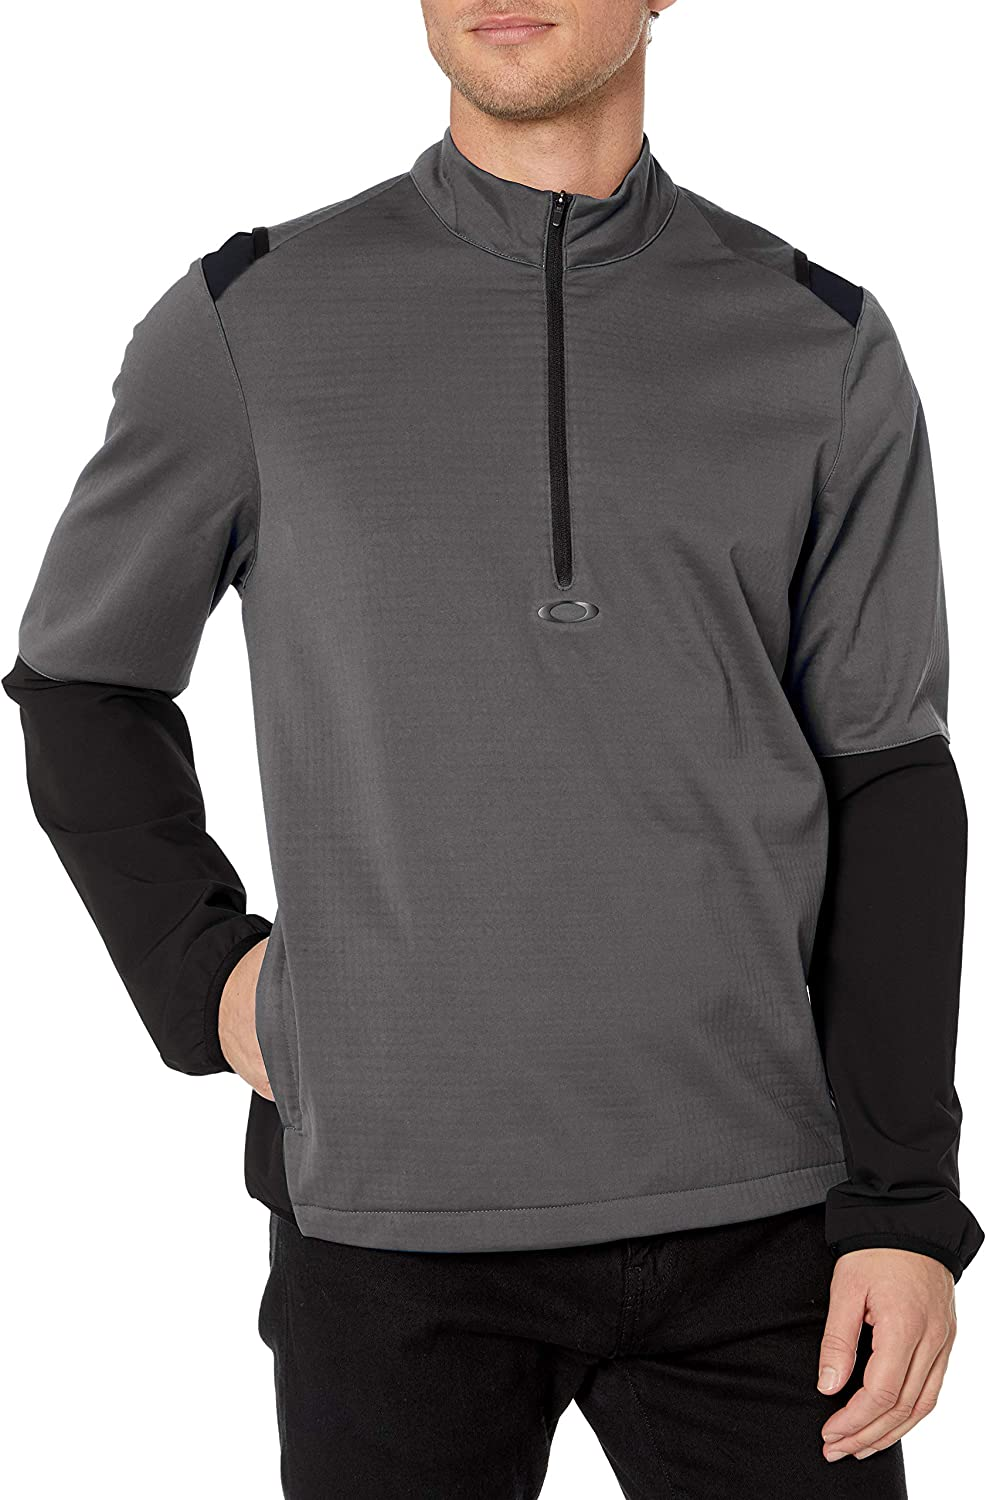 Oakley Men's Charlotte Mall Engineered Shell Soft Jacket NEW before selling